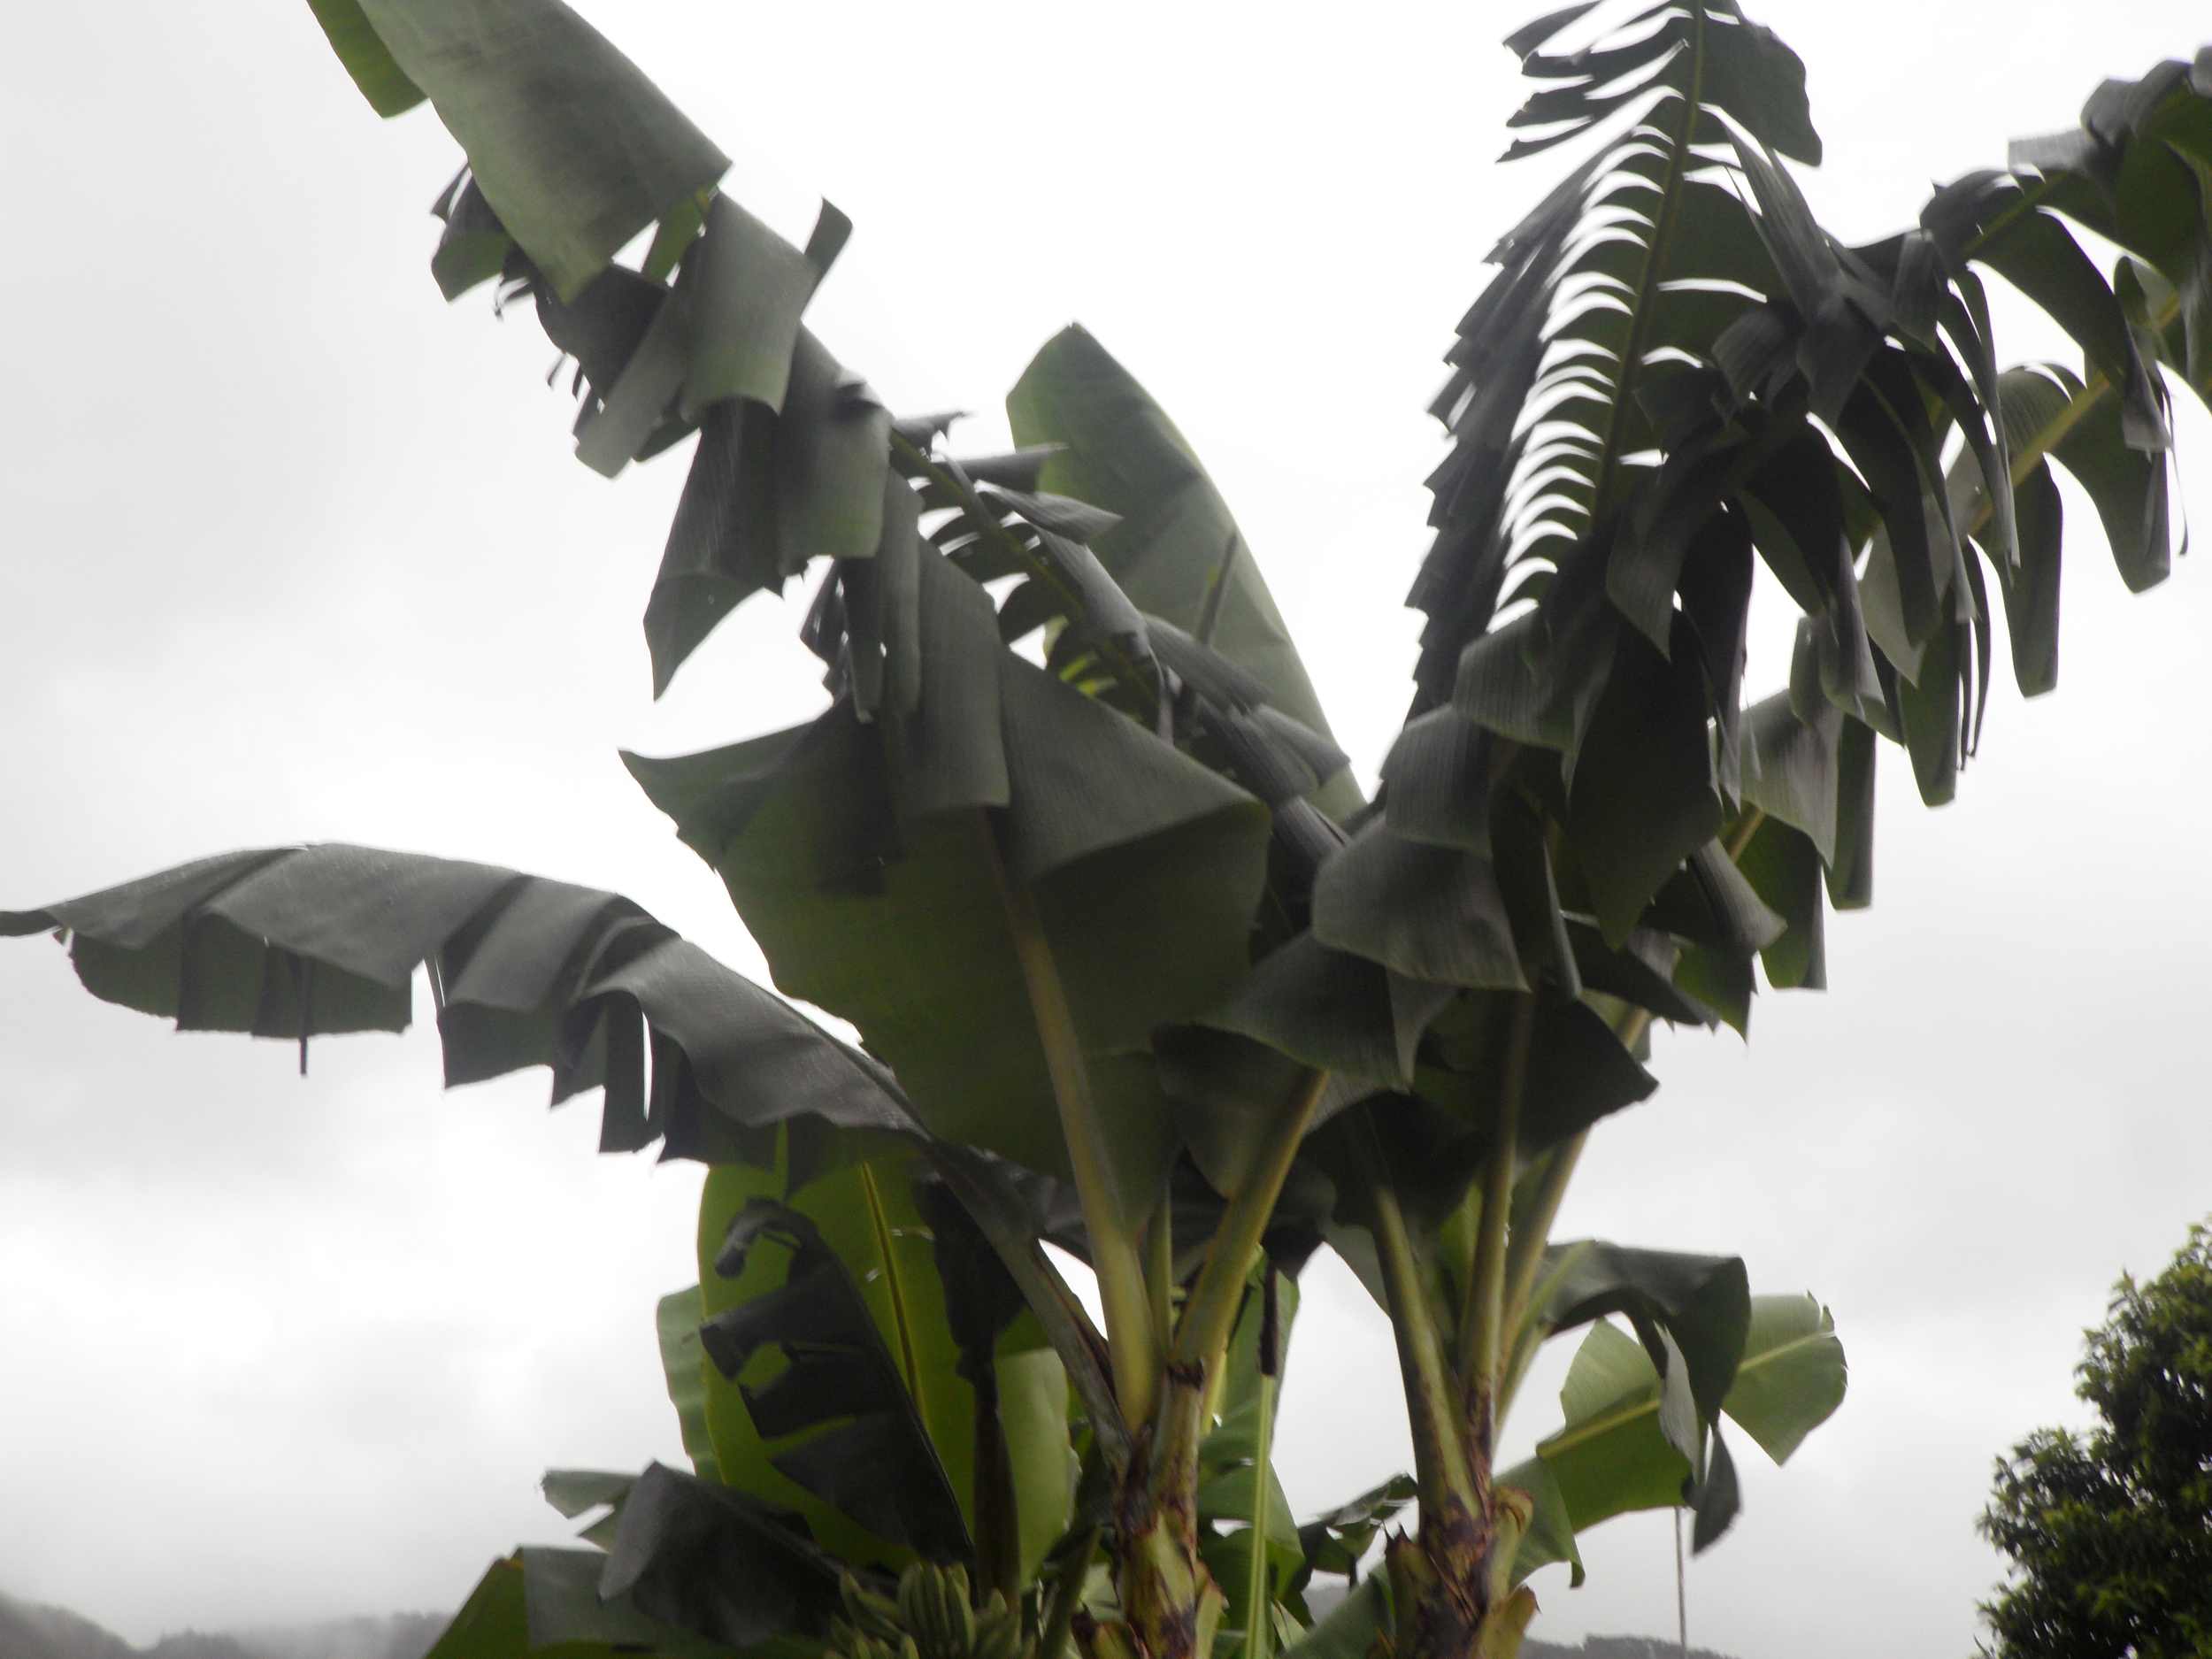 More banana trees